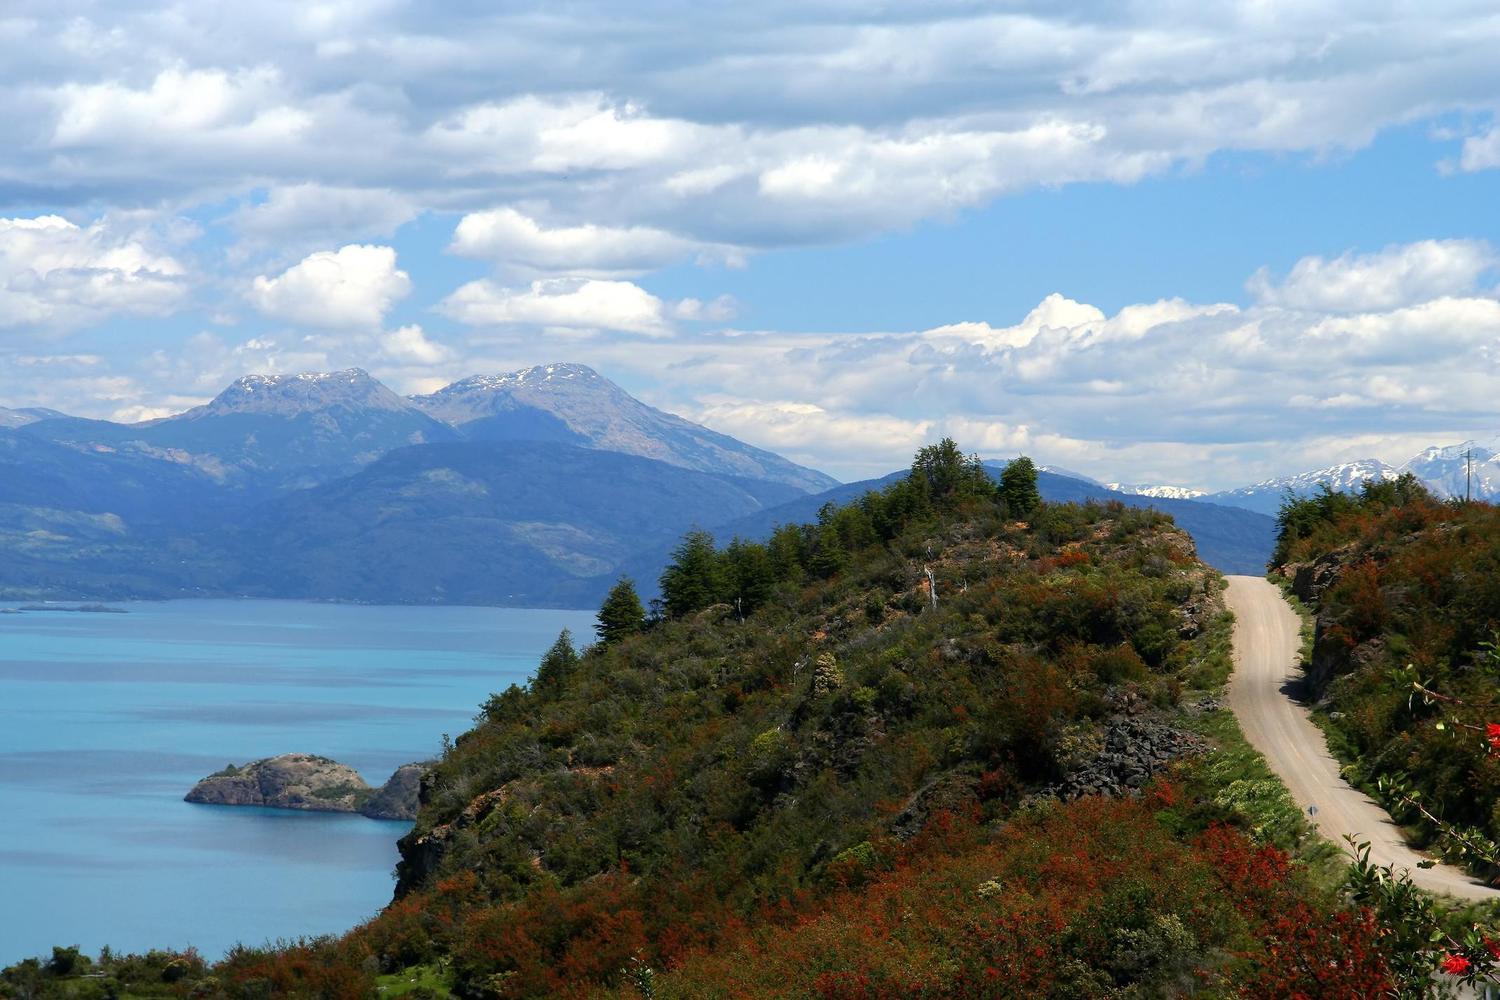 The Carretera Austral passing Lago General Carrera, Chile